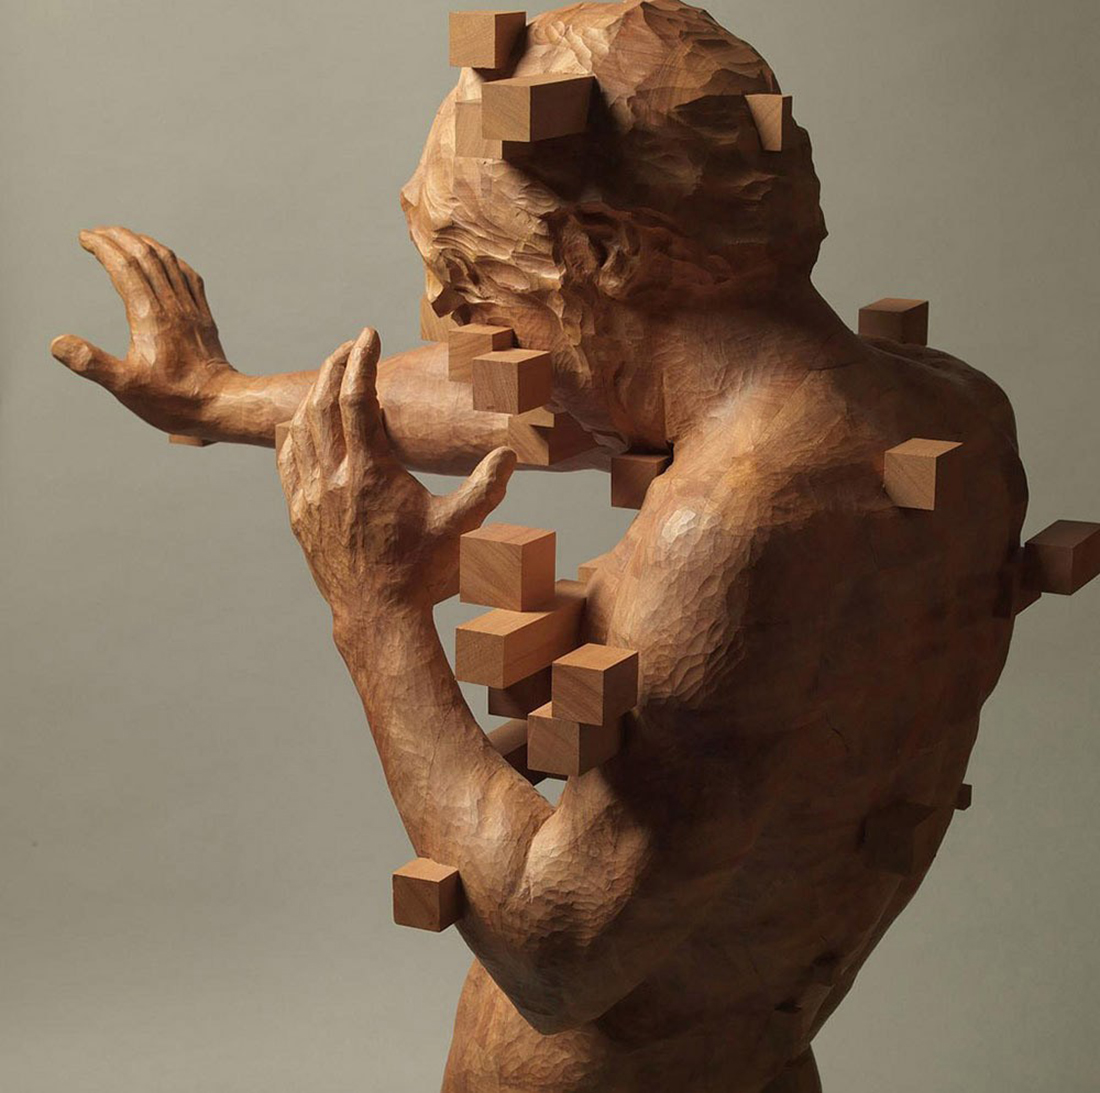 Crea.Tips - Art - Sculpture - Wood - Pixelations - Hsu Tang Han - Ahşap Figuratif Heykeller